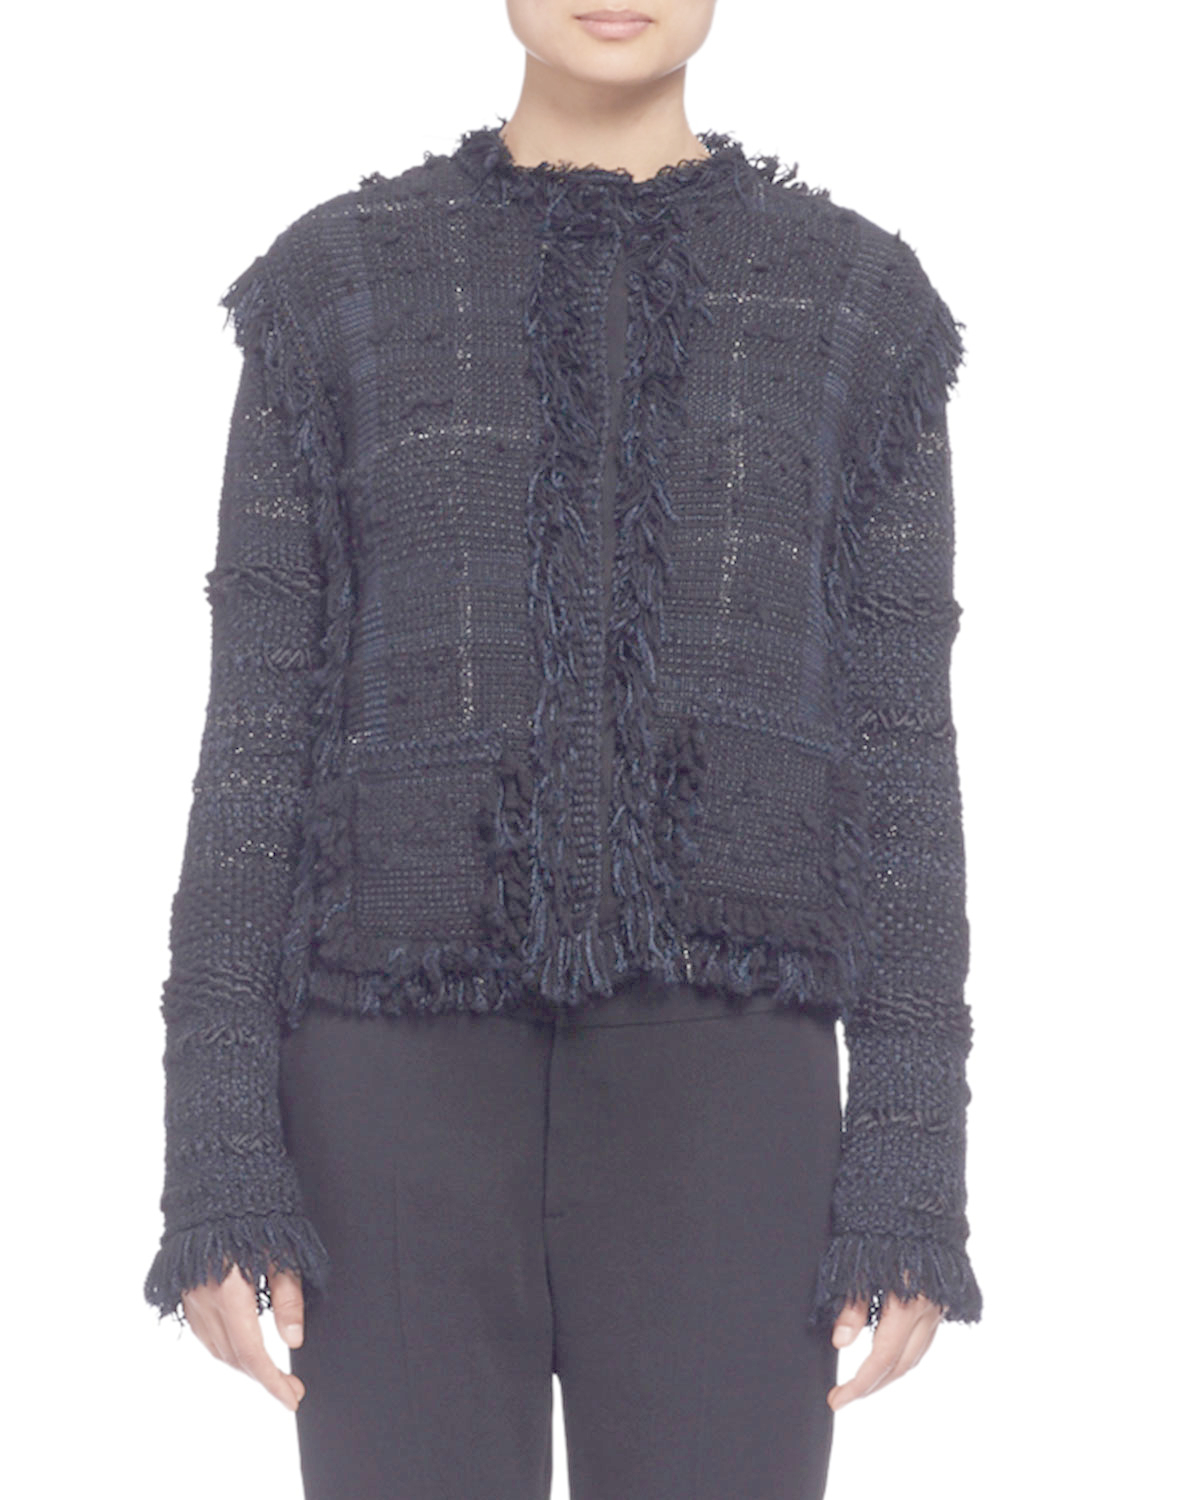 lanvin fringed plaid tweed jacket in black lyst. Black Bedroom Furniture Sets. Home Design Ideas